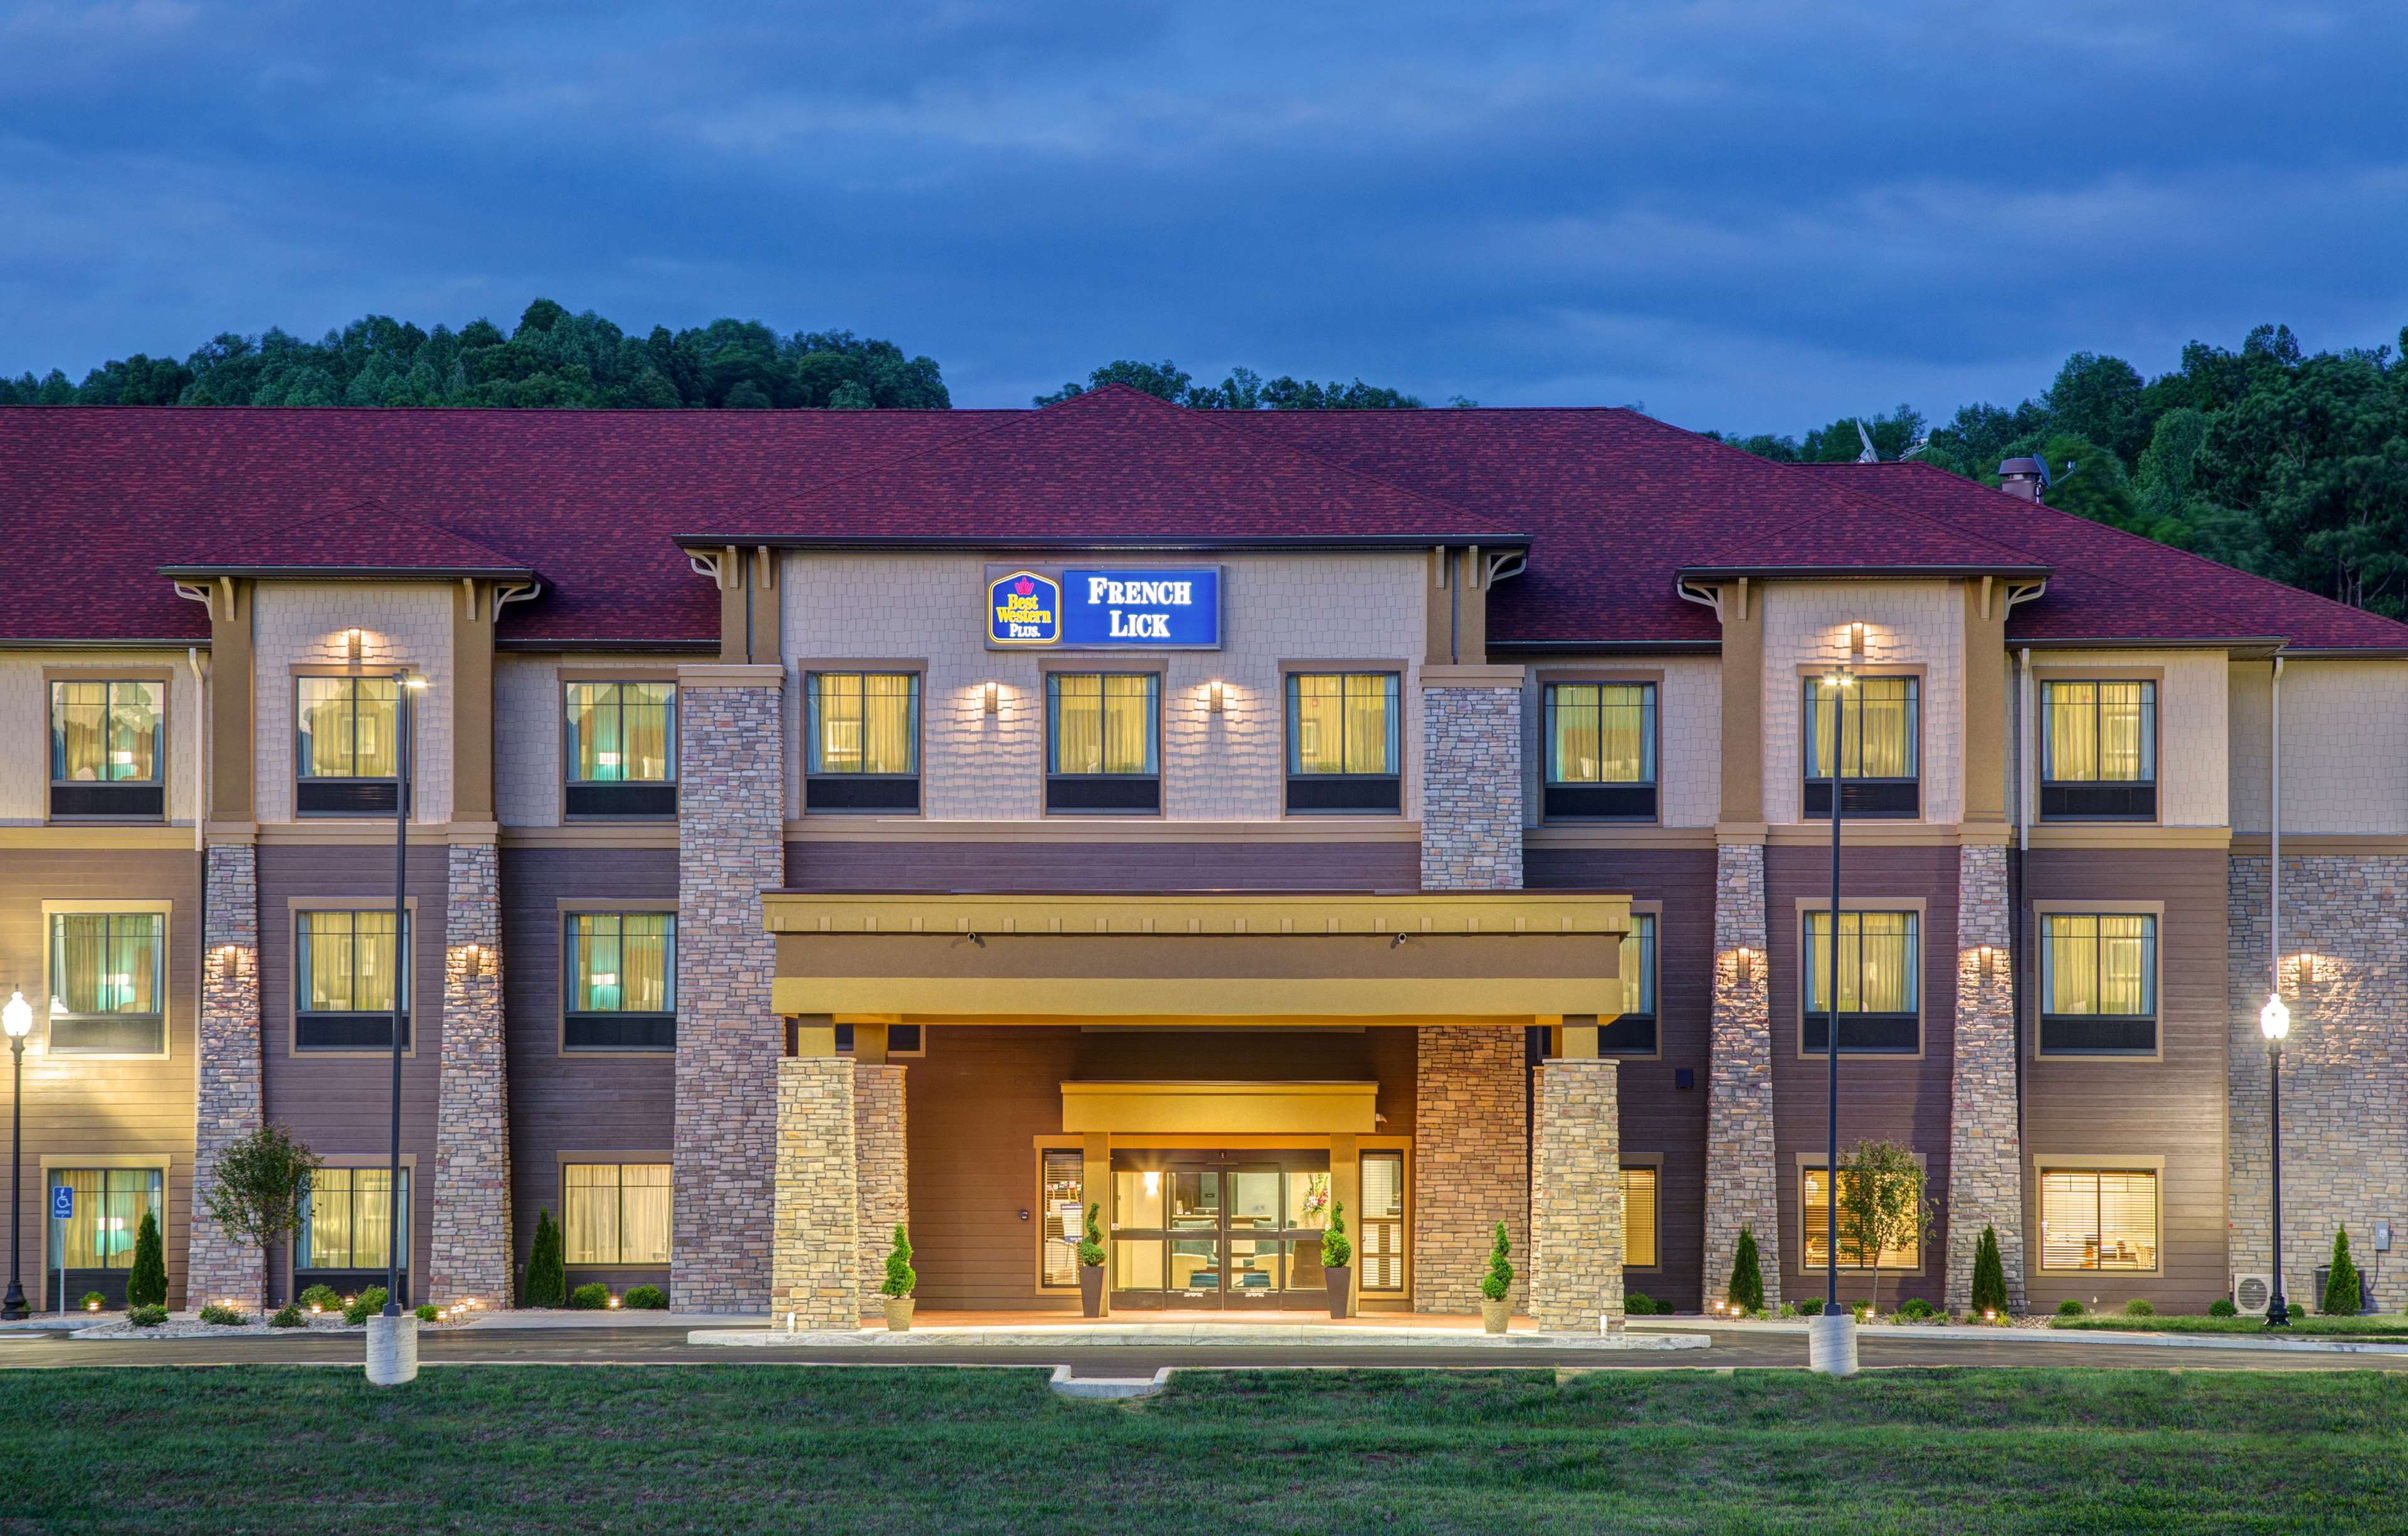 Best Western Plus French Lick image 33